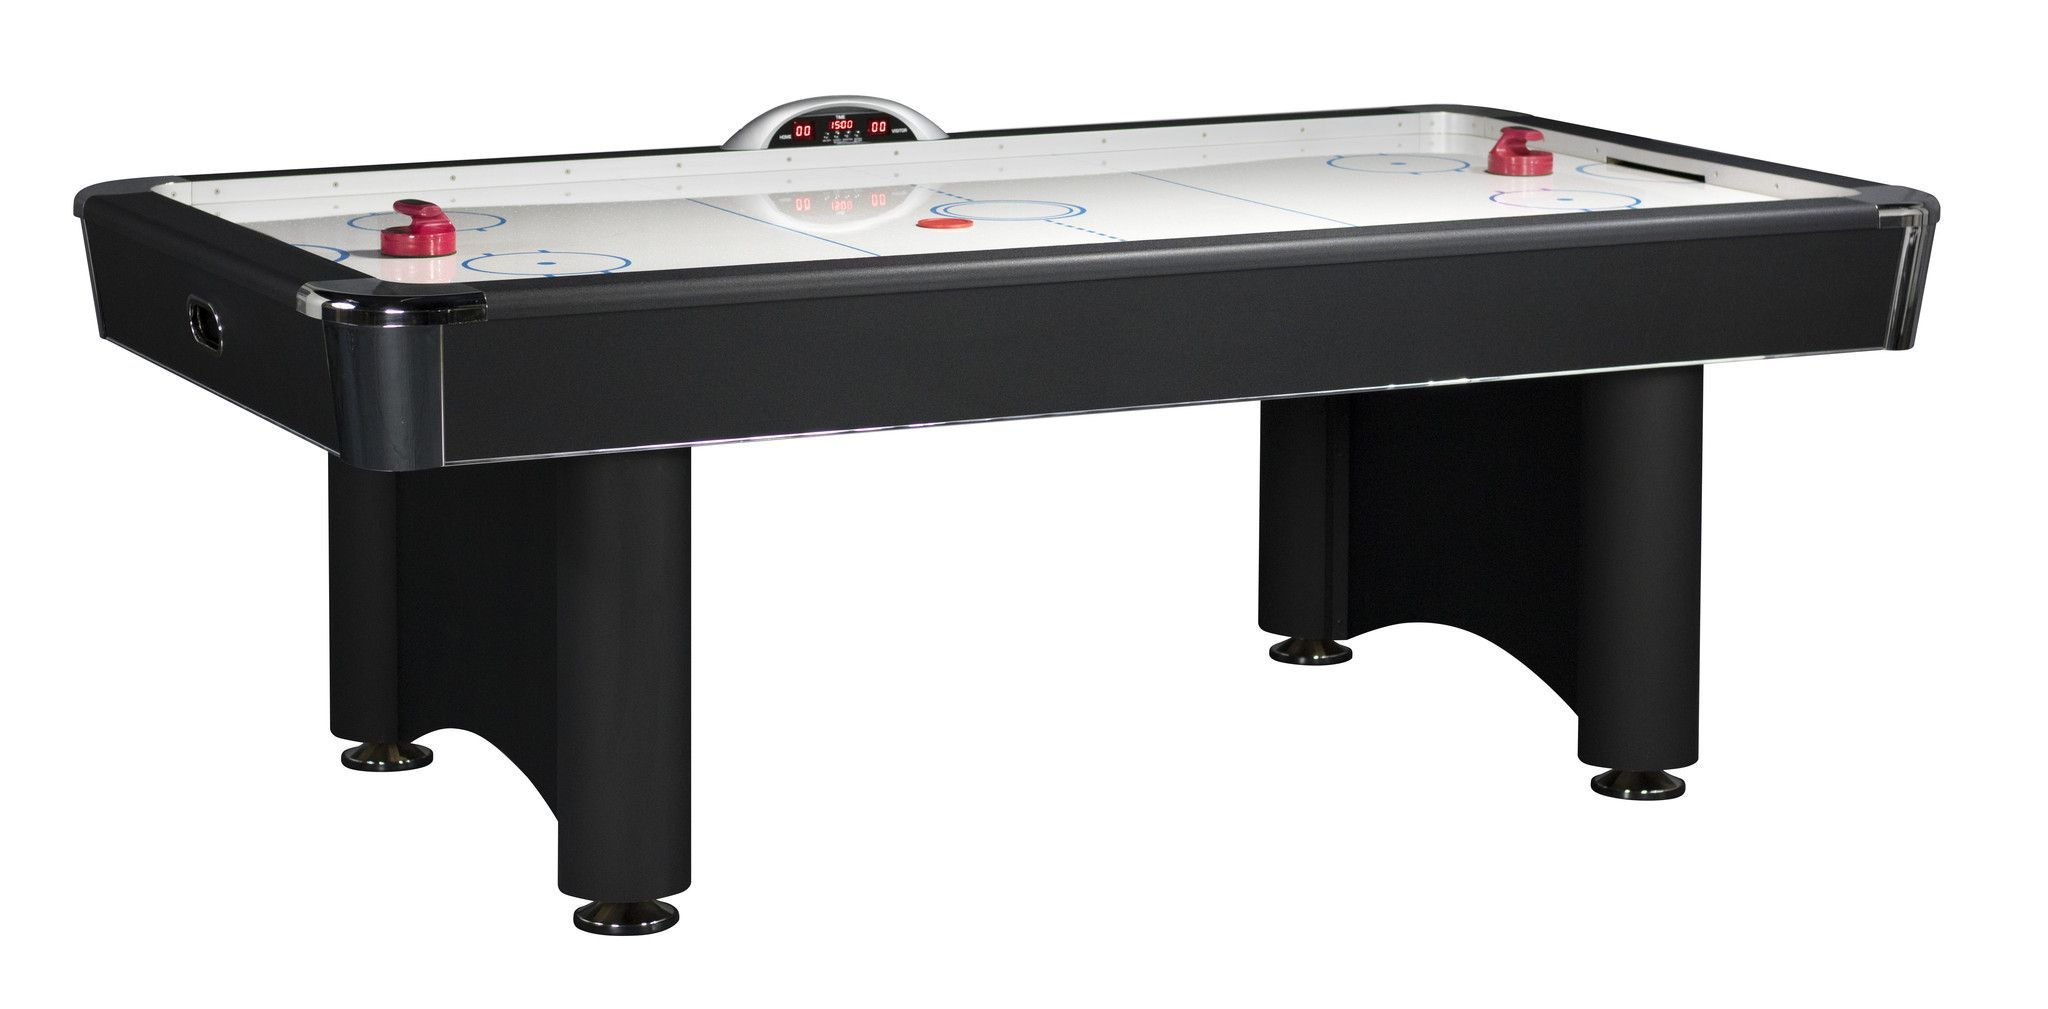 The Downtown Air Hockey Air Hockey Pool Tables For Sale Table